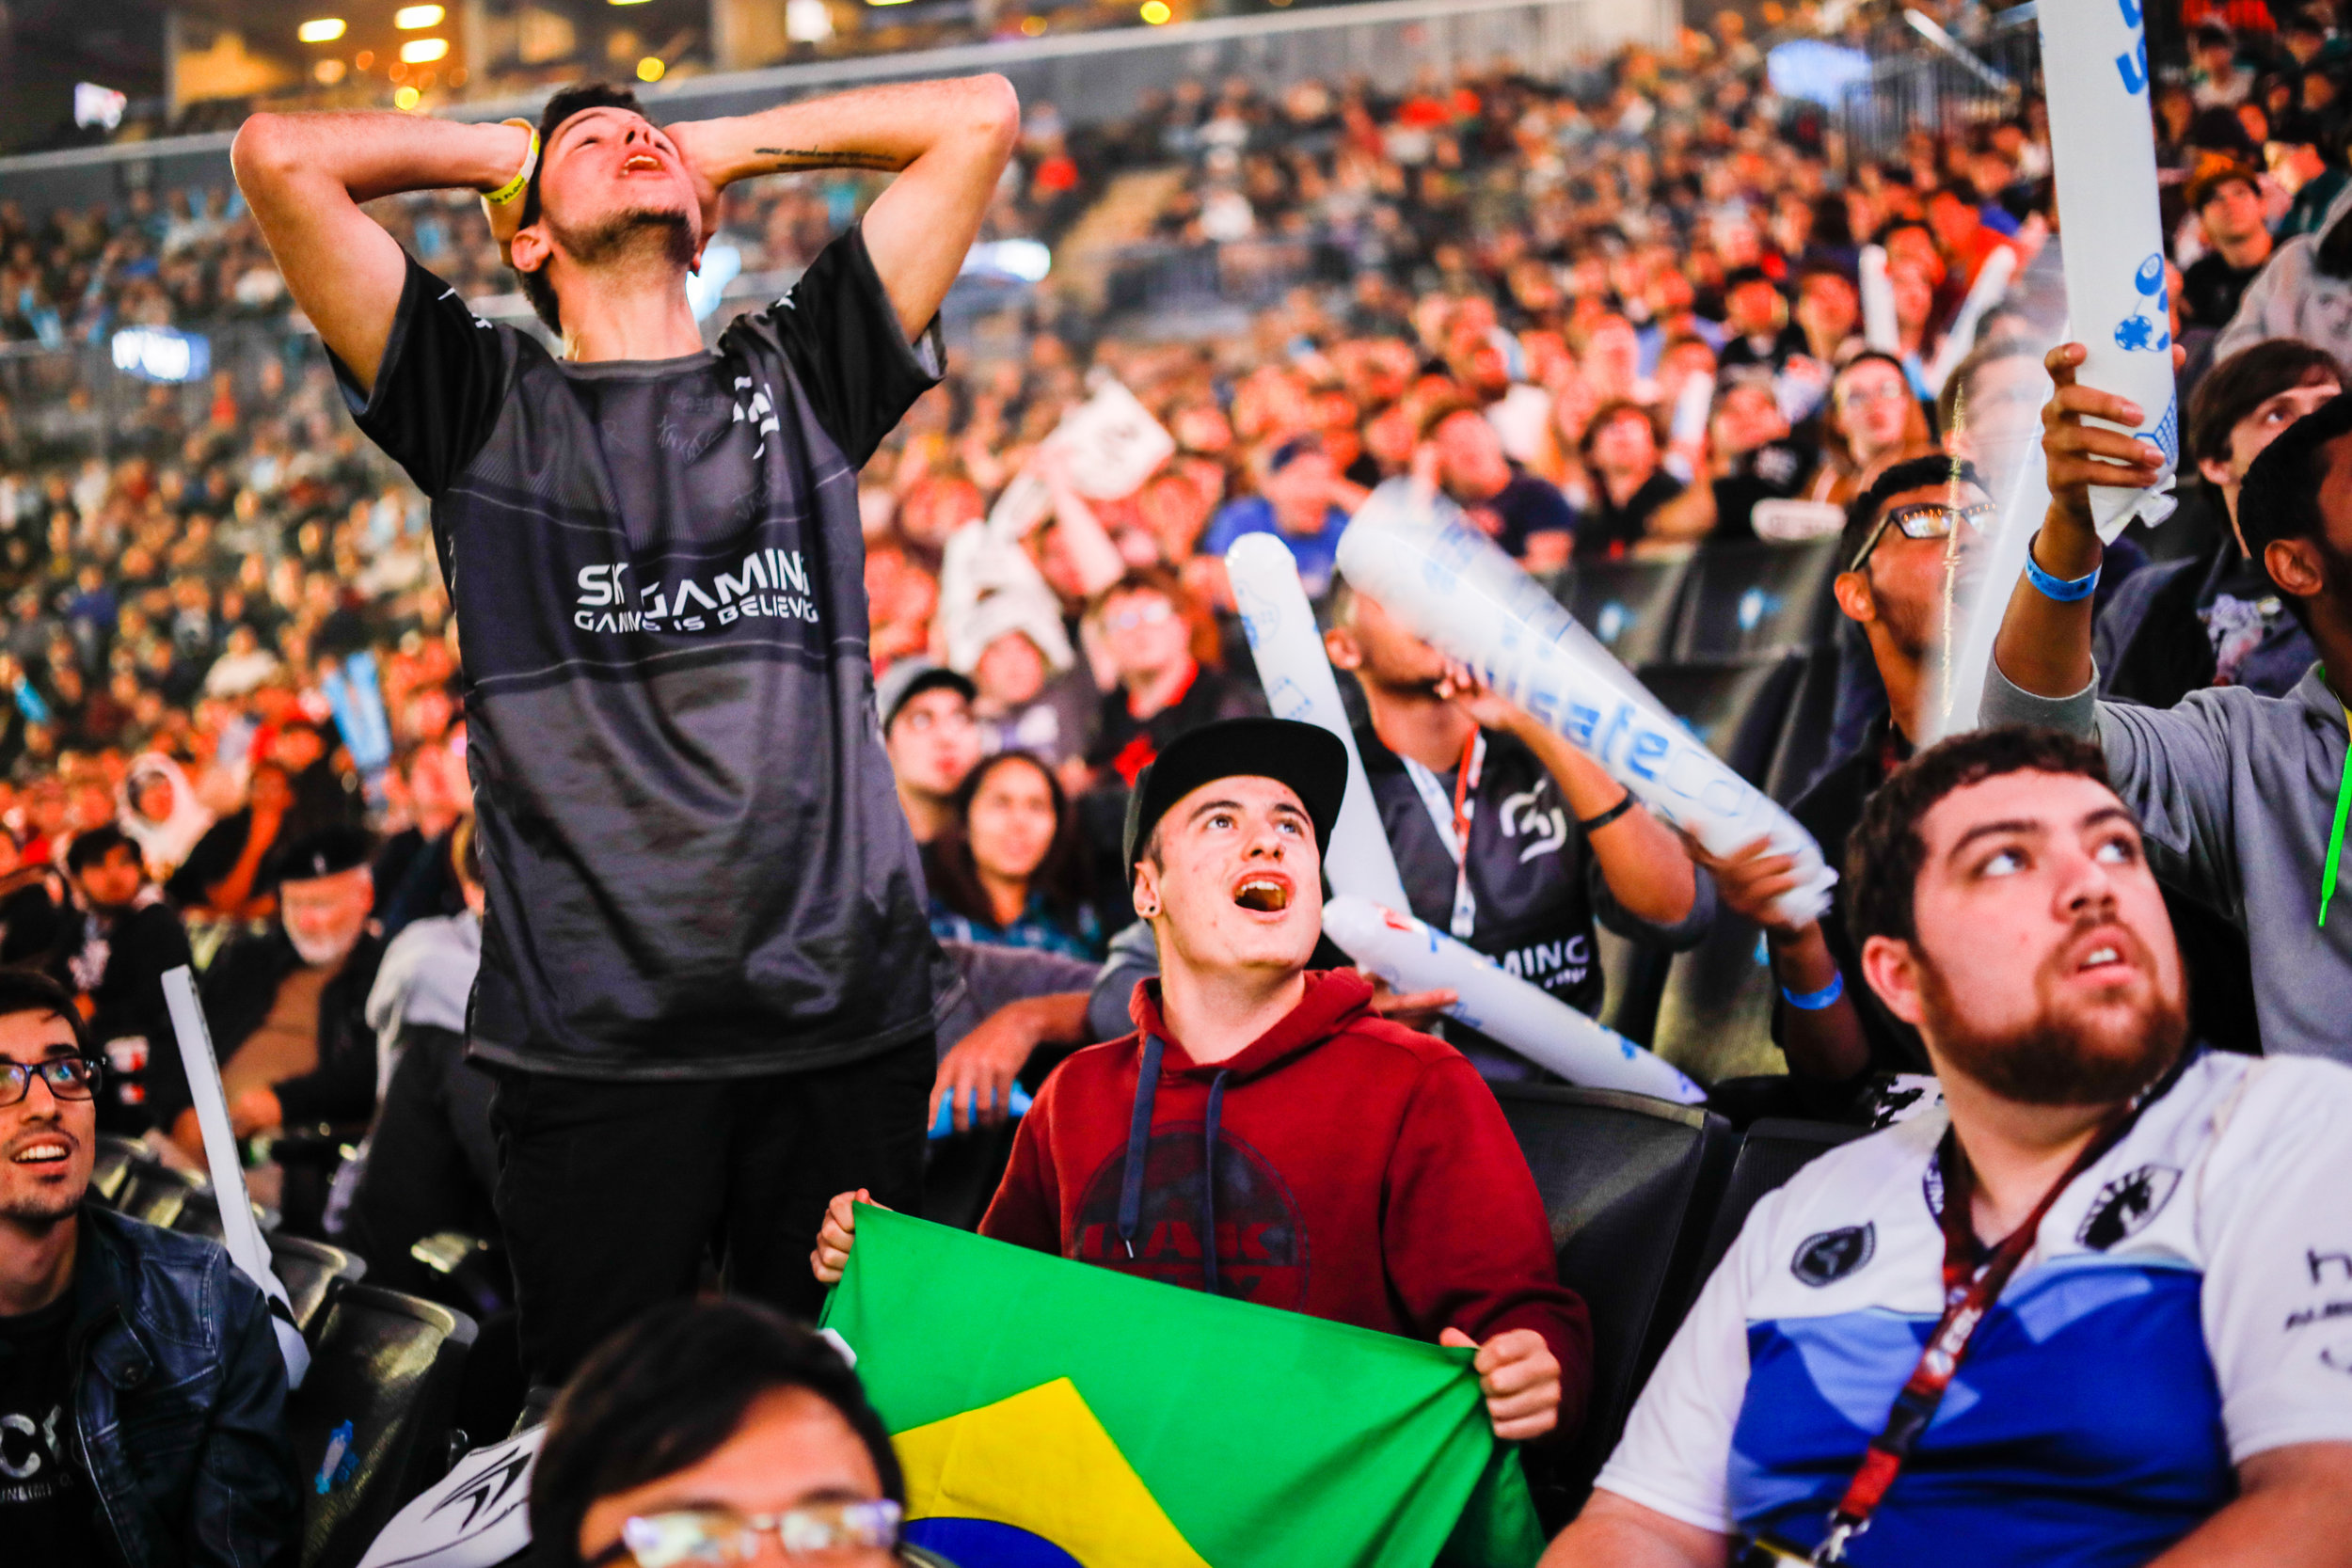 Brazilian fans were particularly enthused and outspoken in the audience.